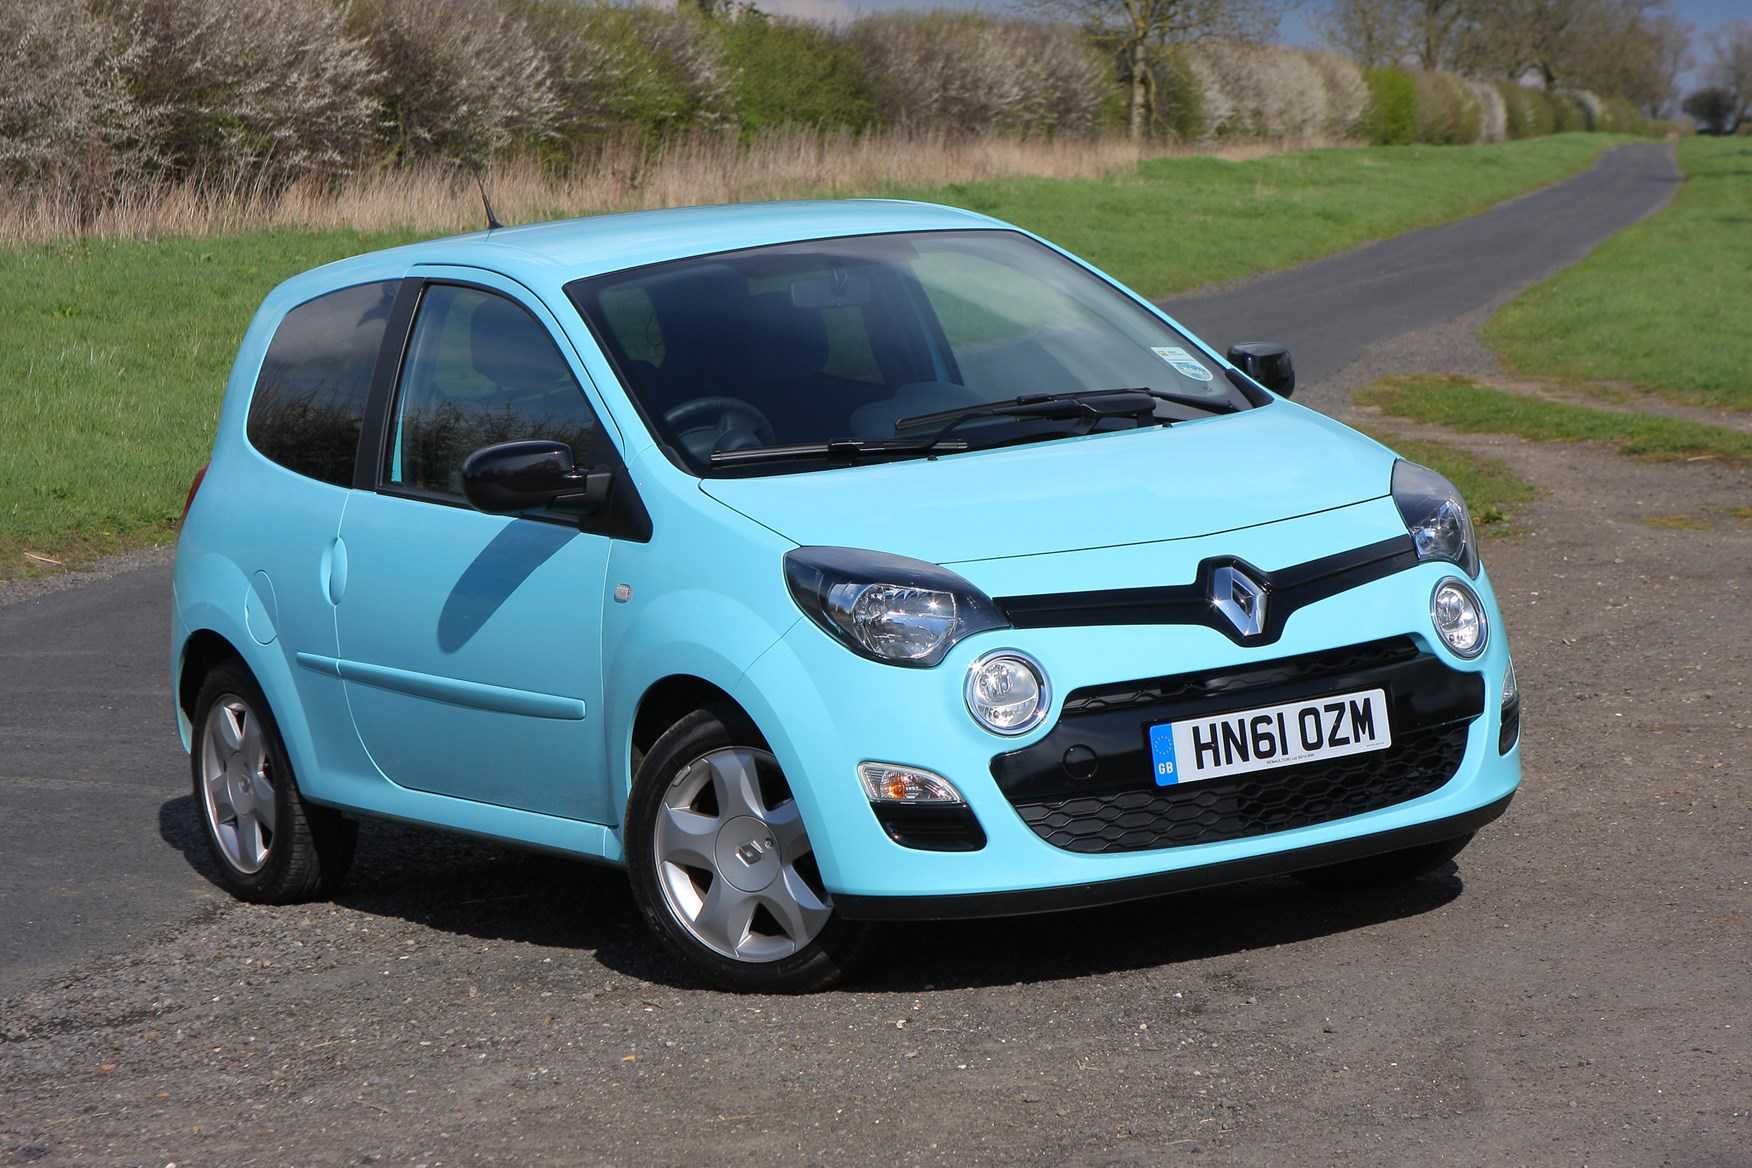 renault twingo hatchback 2007 2014 photos parkers. Black Bedroom Furniture Sets. Home Design Ideas